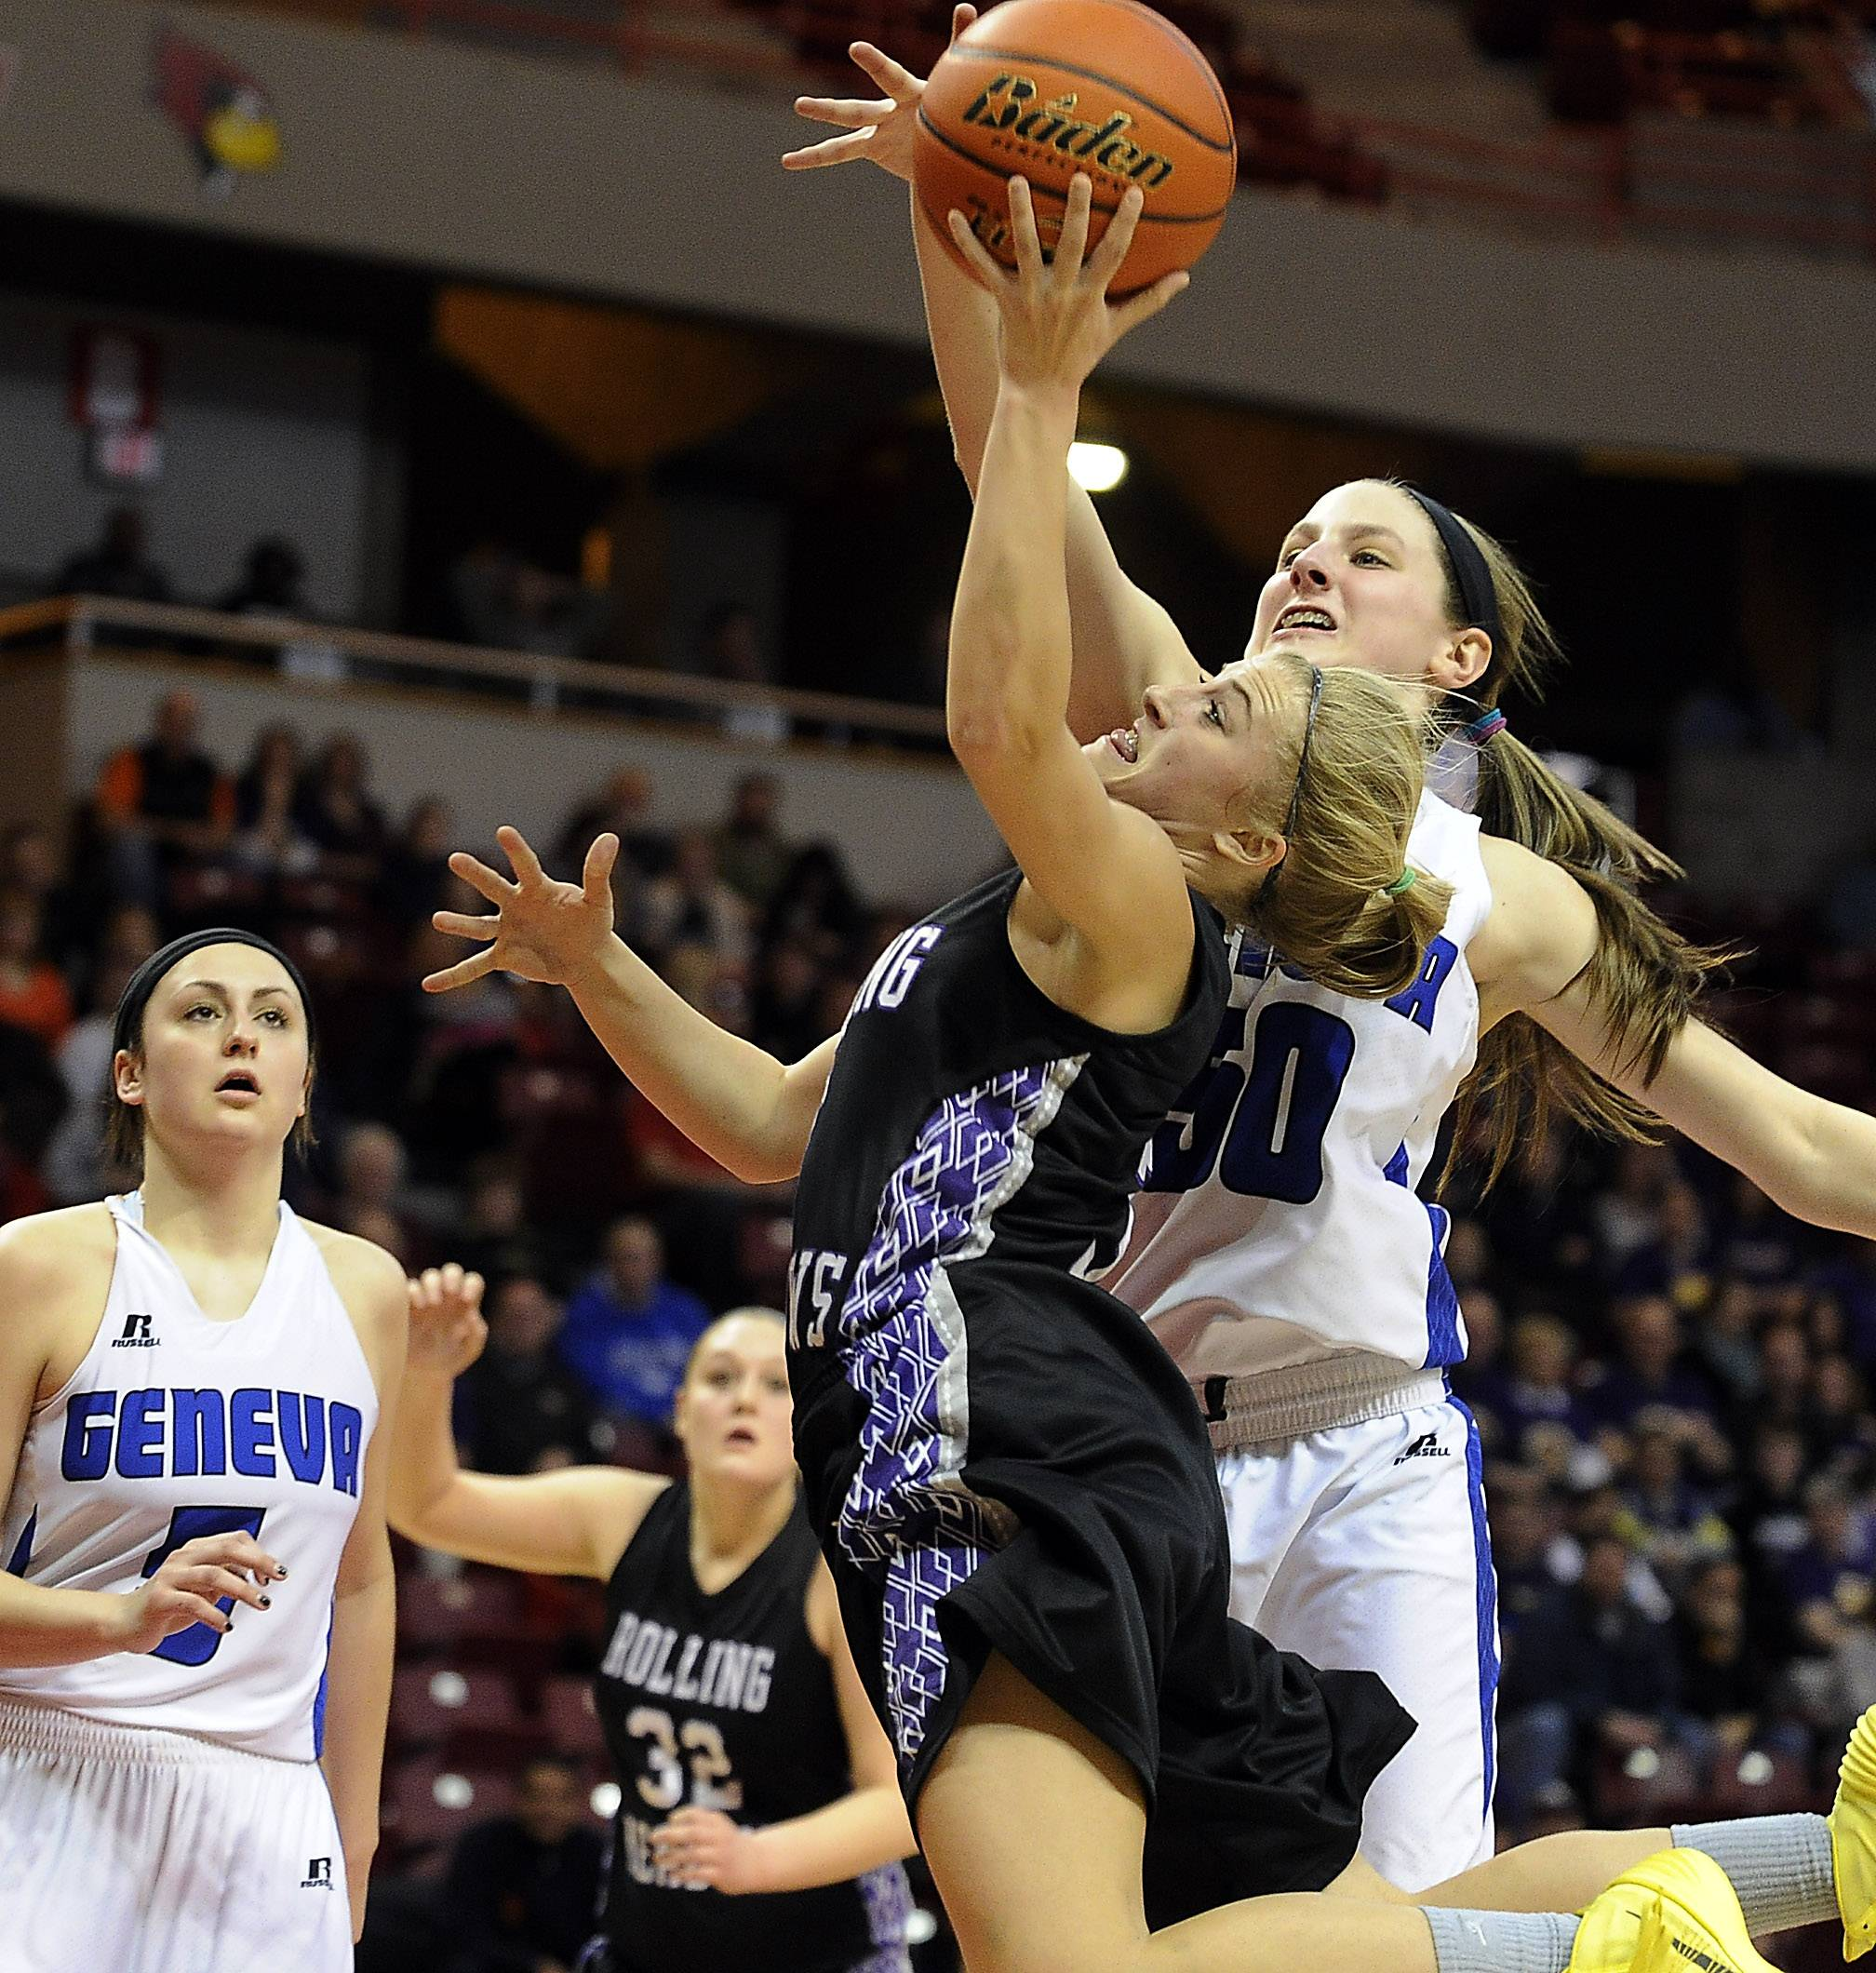 Rolling Meadows' Jackie Kemph delivers to the basket but is blocked by Geneva's Grace Loberg.